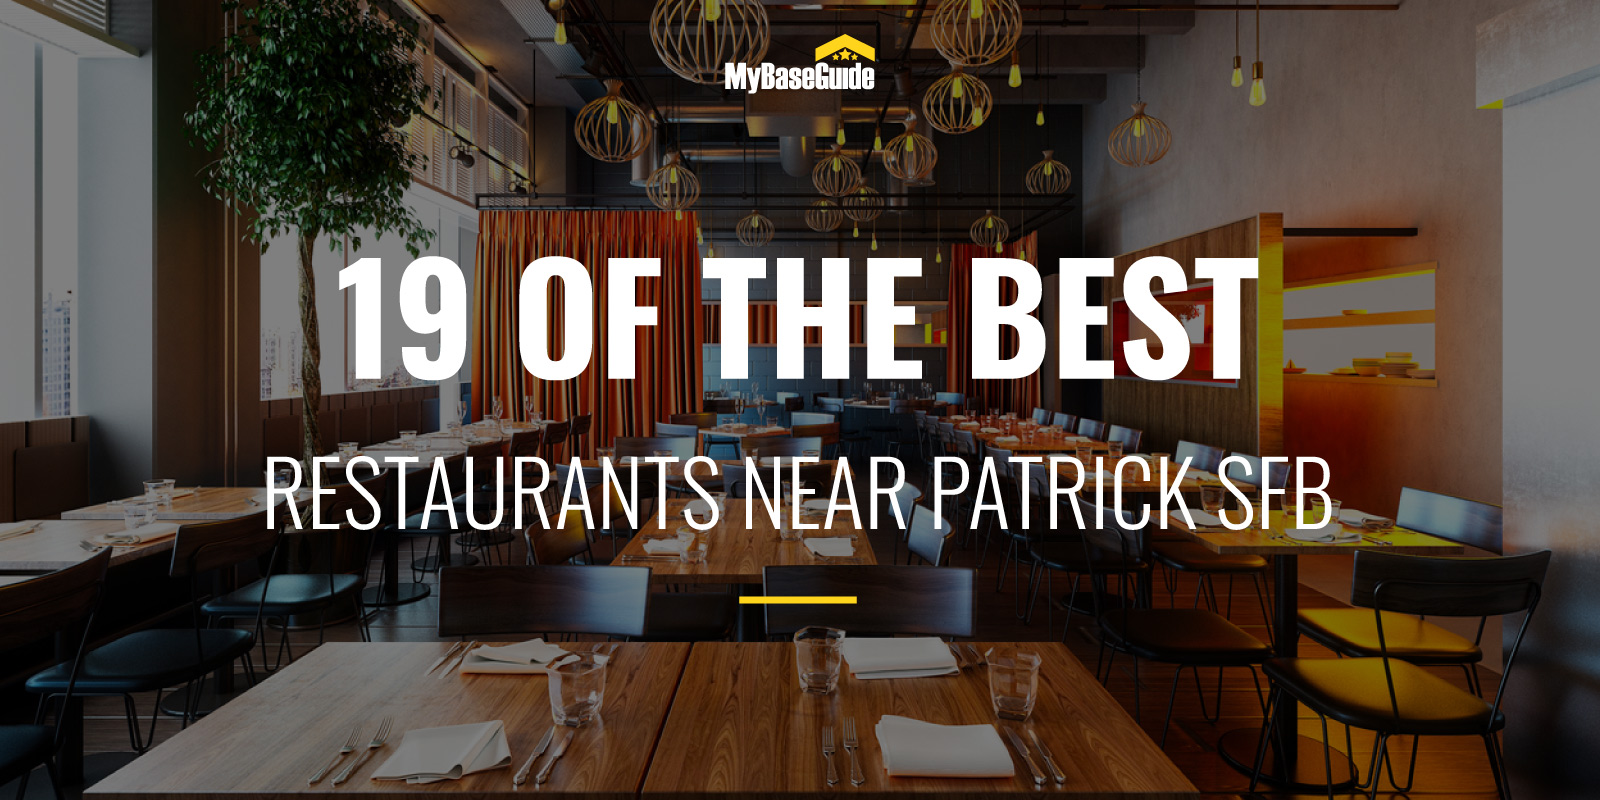 19 of the Best Restaurants Near Patrick AFB (Now Space Force Base)